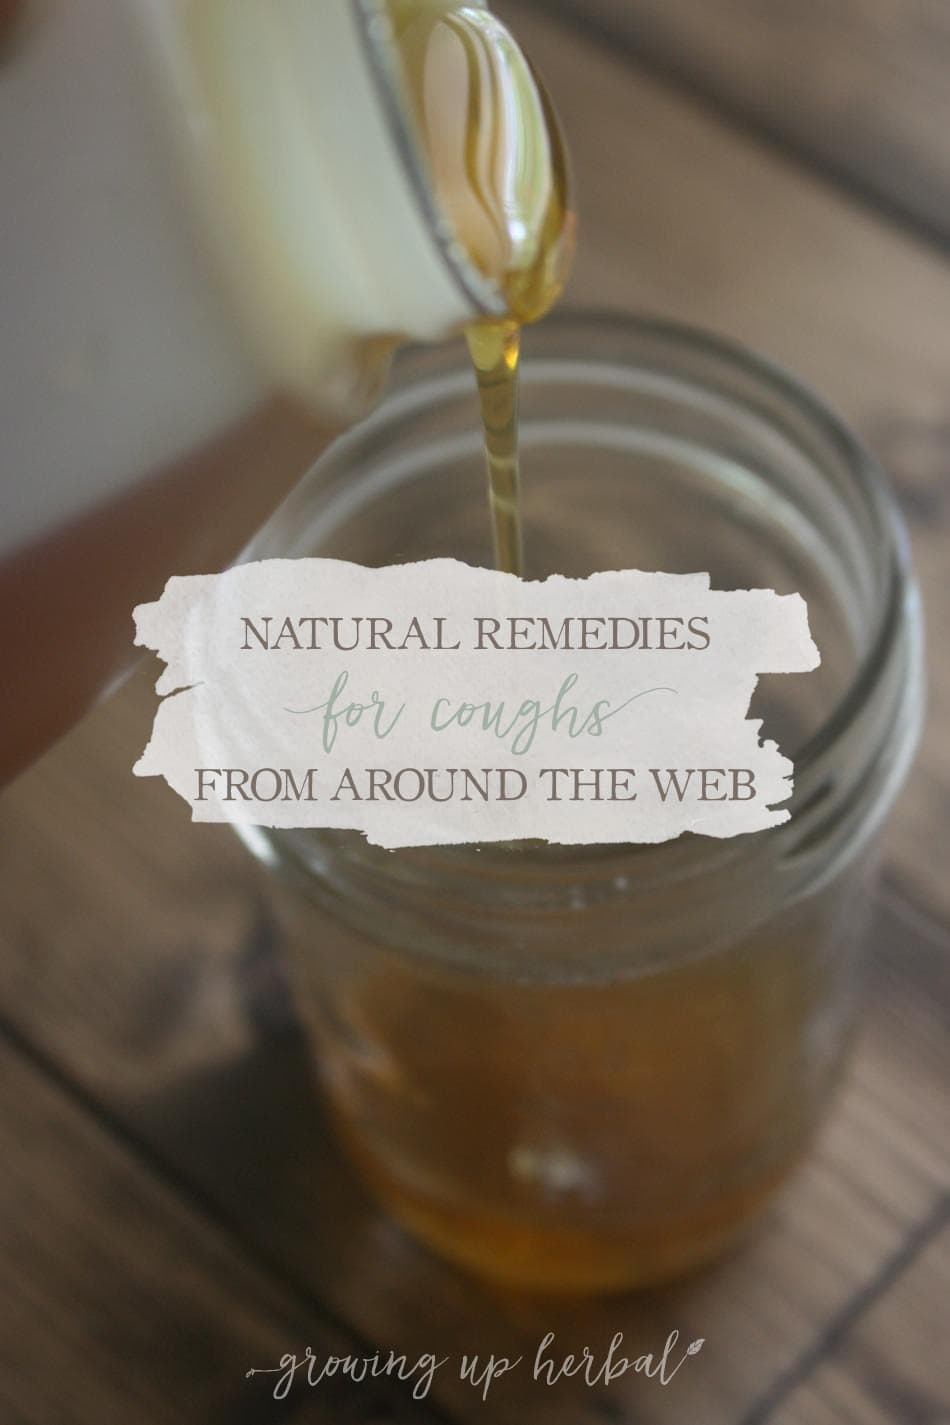 Natural Remedies For Coughs From Around The Web   Growing Up Herbal   Enjoy these great cough remedies from bloggers around the web!